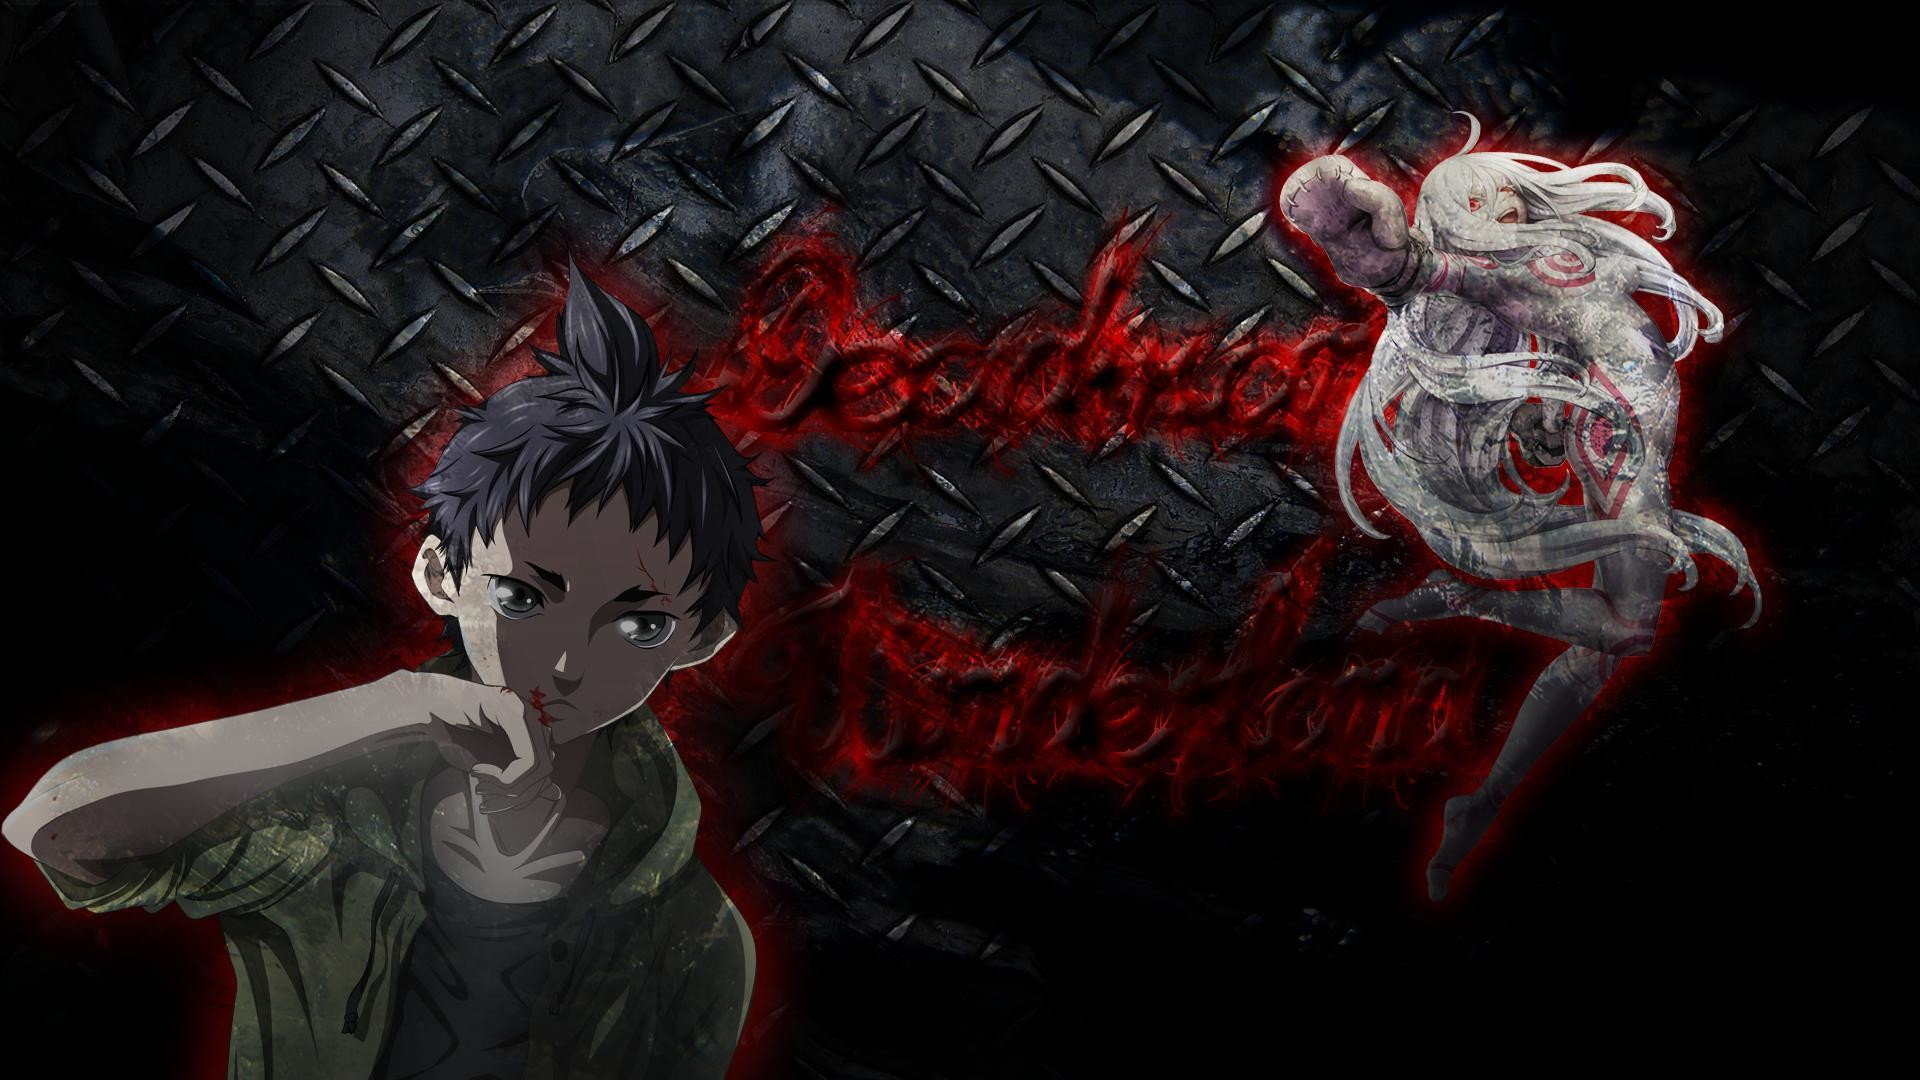 1920x1080 Pin Deadman Wonderland Wallpaper By Bixes on Pinterest